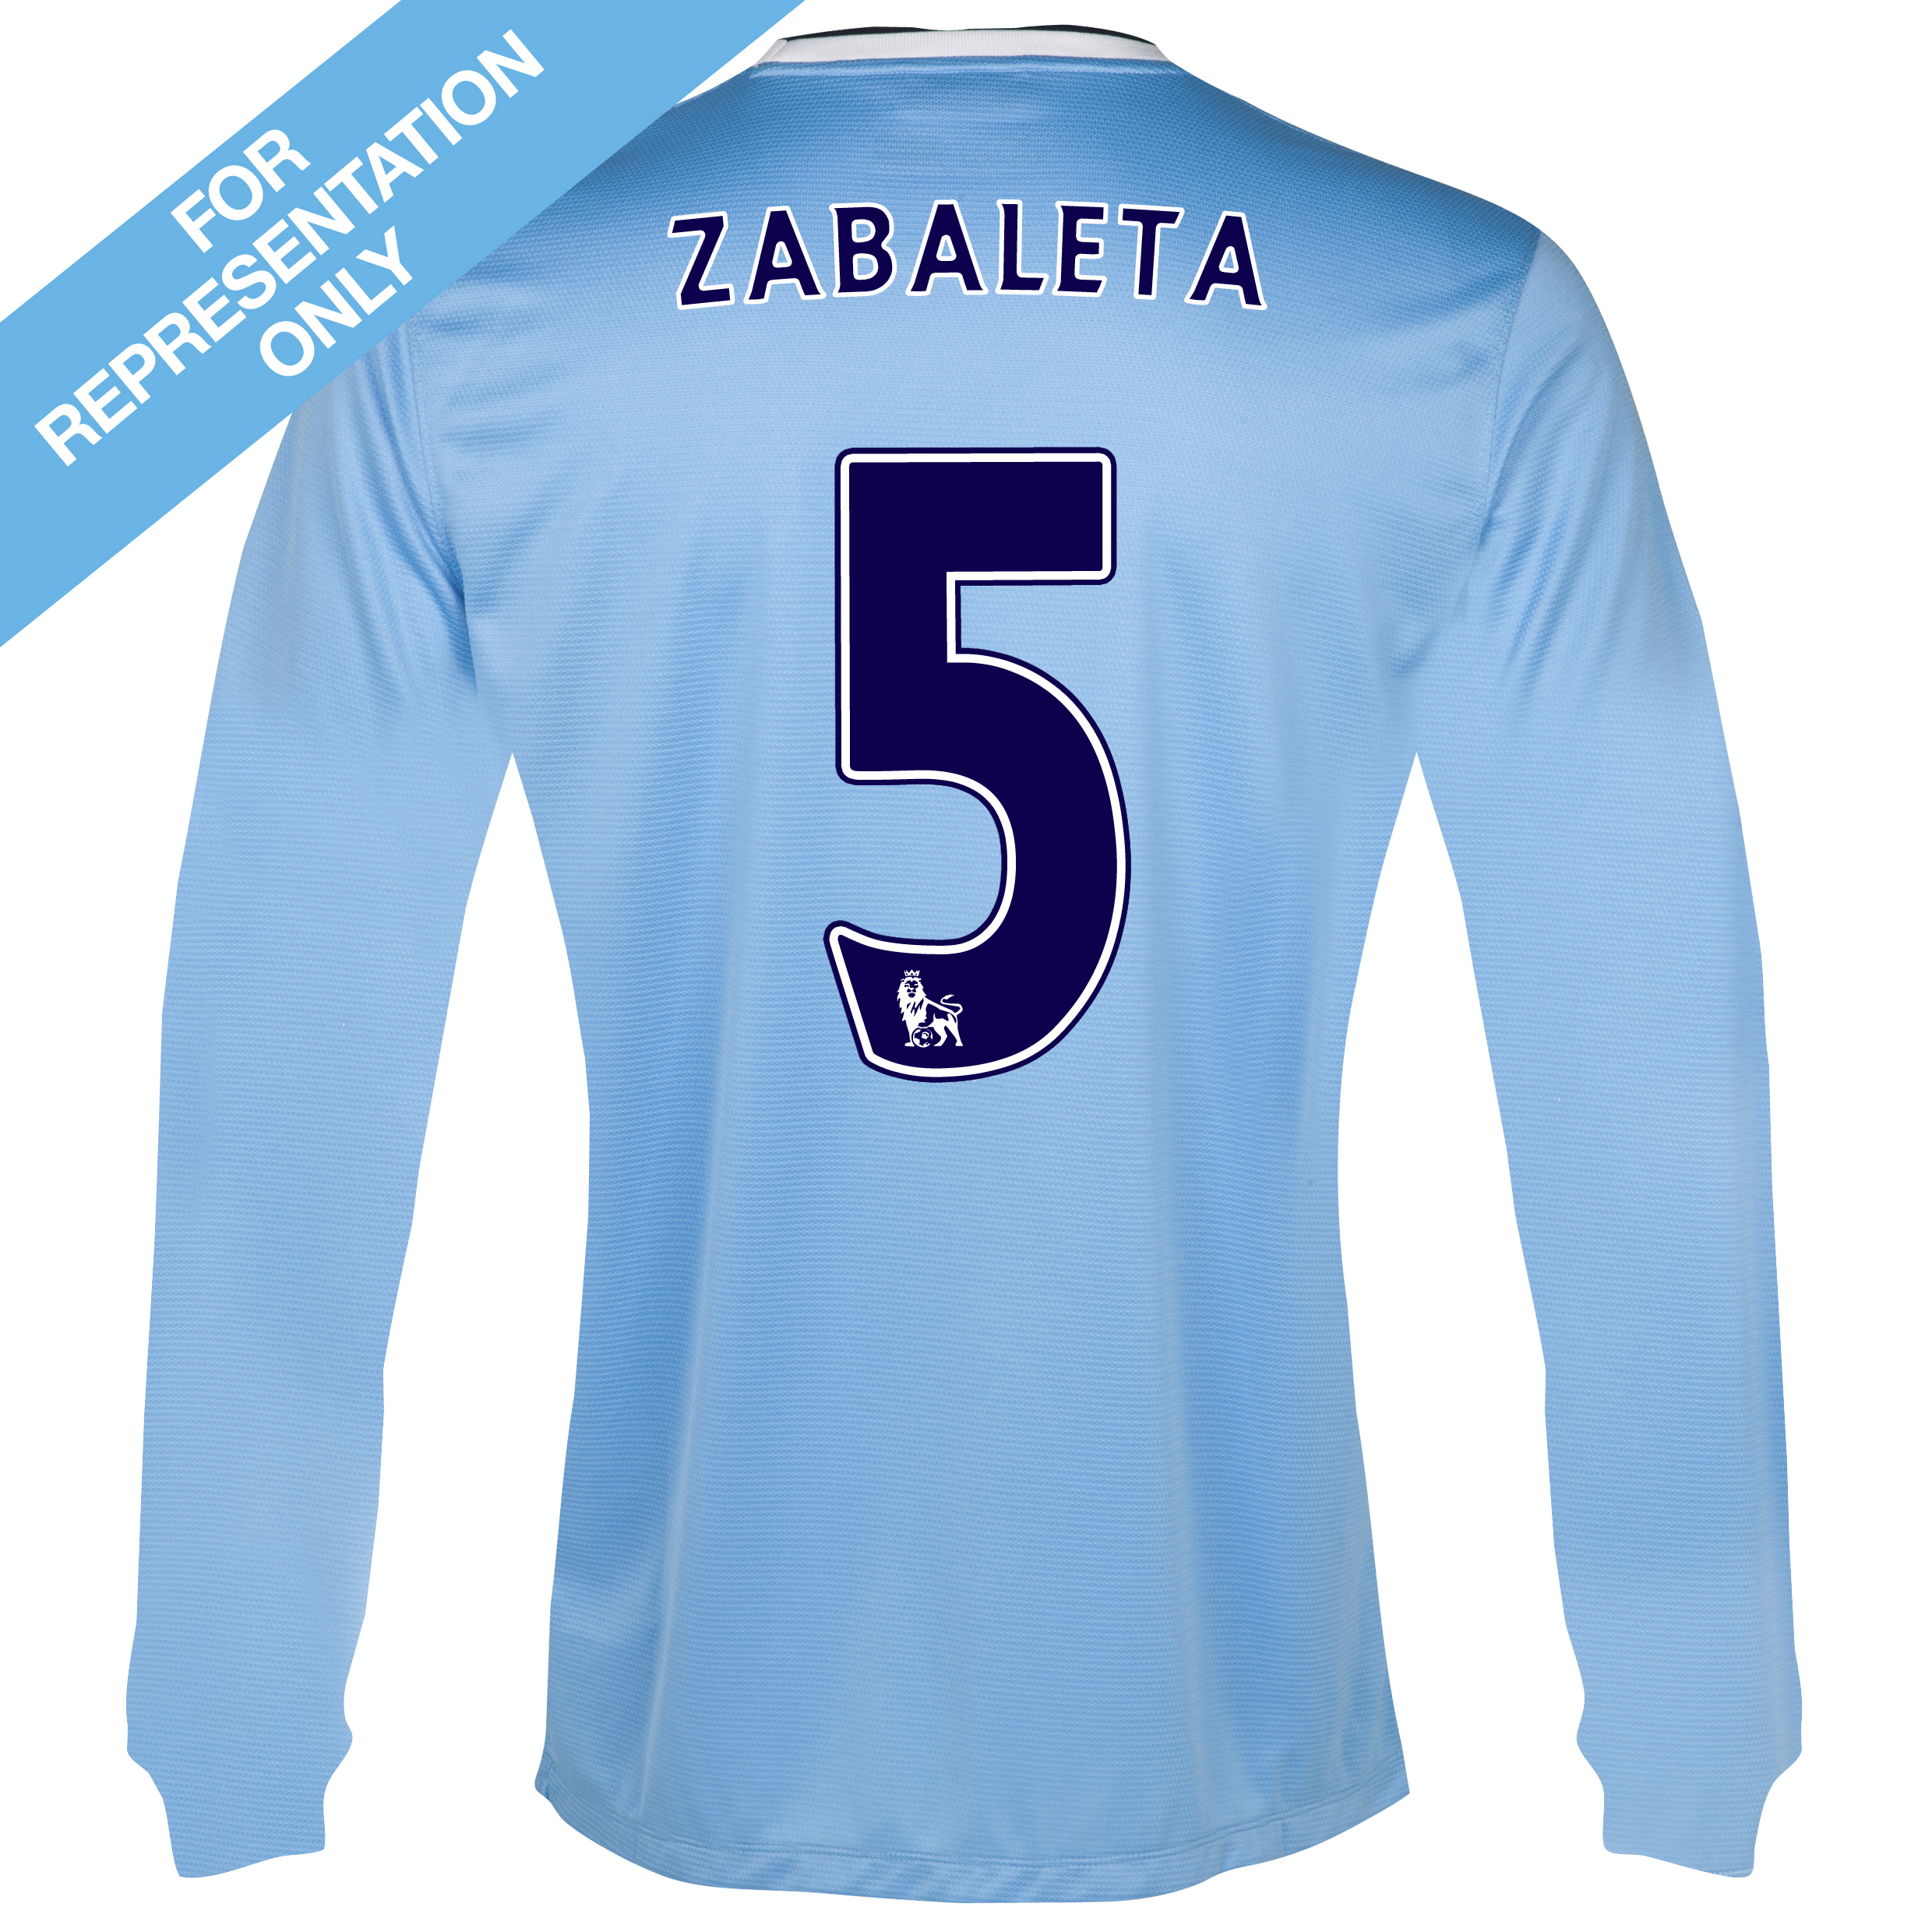 Manchester City Home Shirt 2013/14 - Long Sleeved - Junior with Zabaleta 5 printing